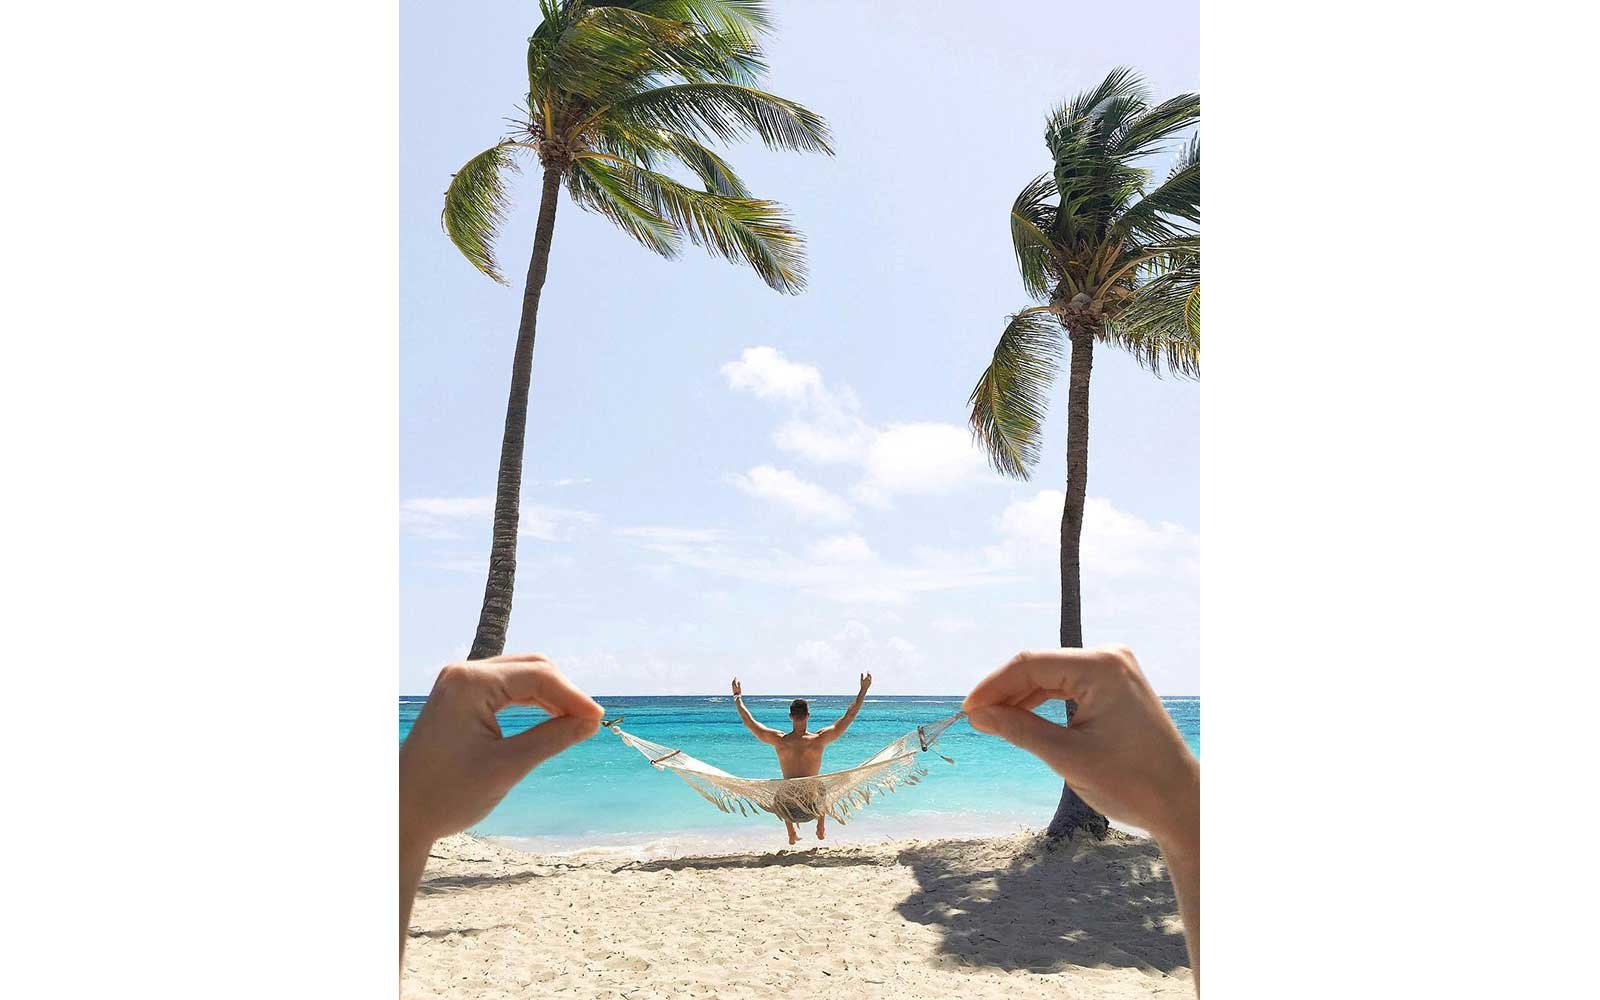 On the beach in Punta Cana, Dominican Republic